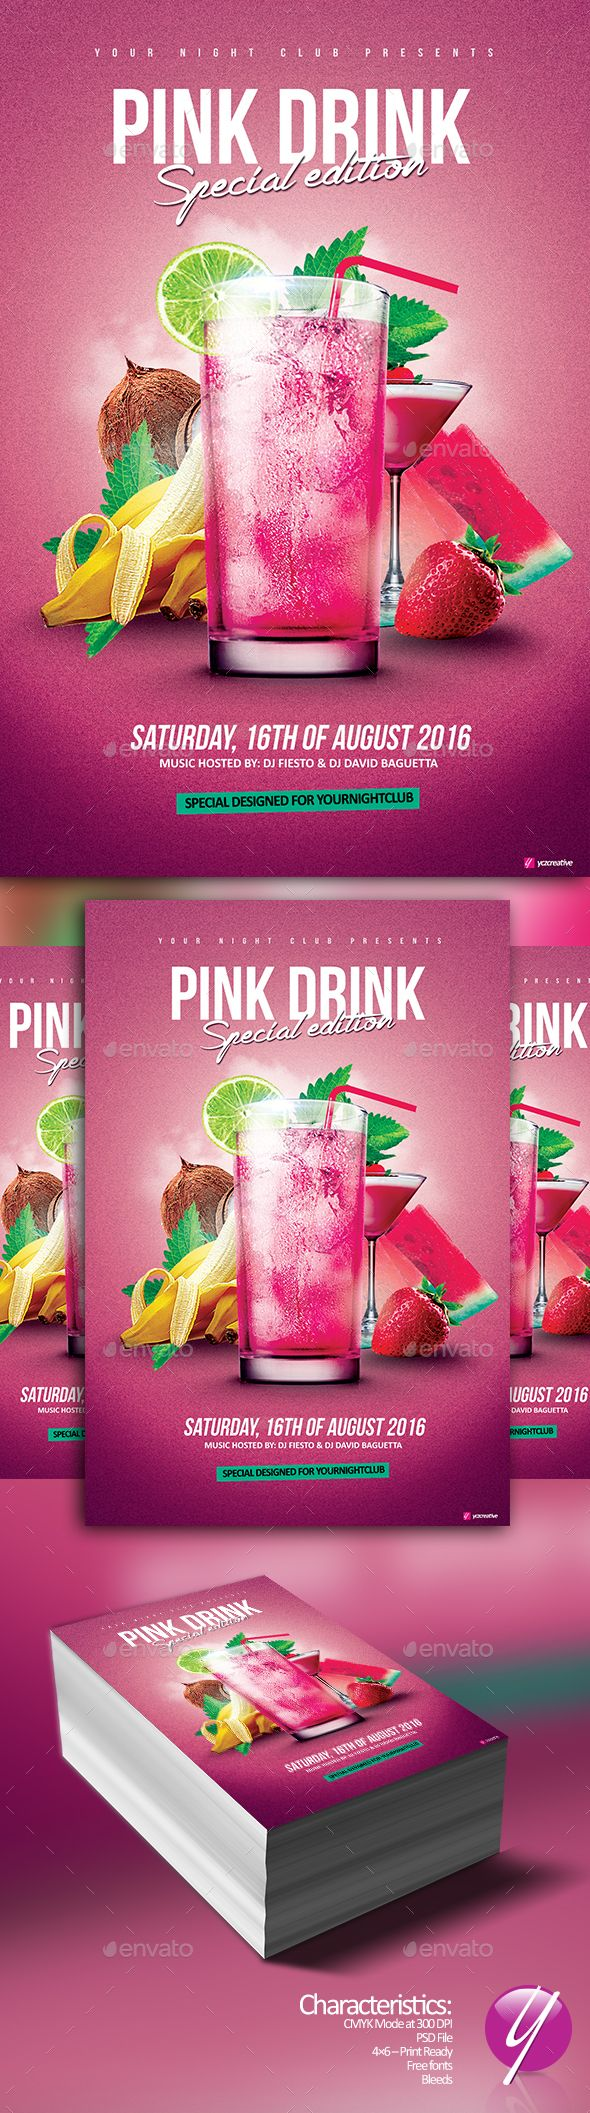 Pink Drink Special Flyer Template PSD. Download here: http://graphicriver.net/item/pink-drink-special/16068965?ref=ksioks